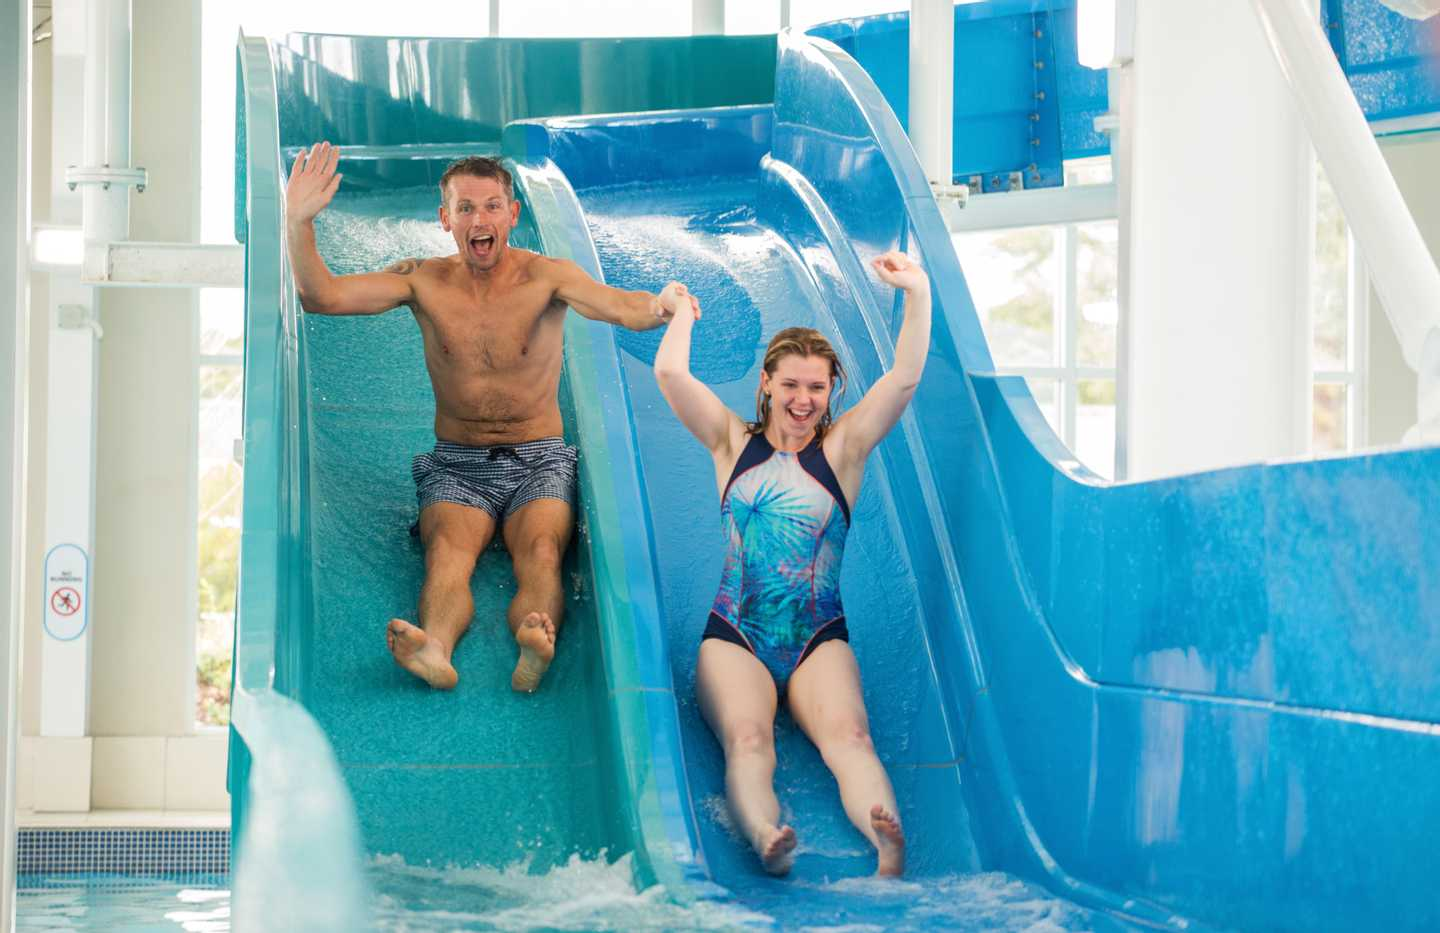 Guests whizzing down the water slide